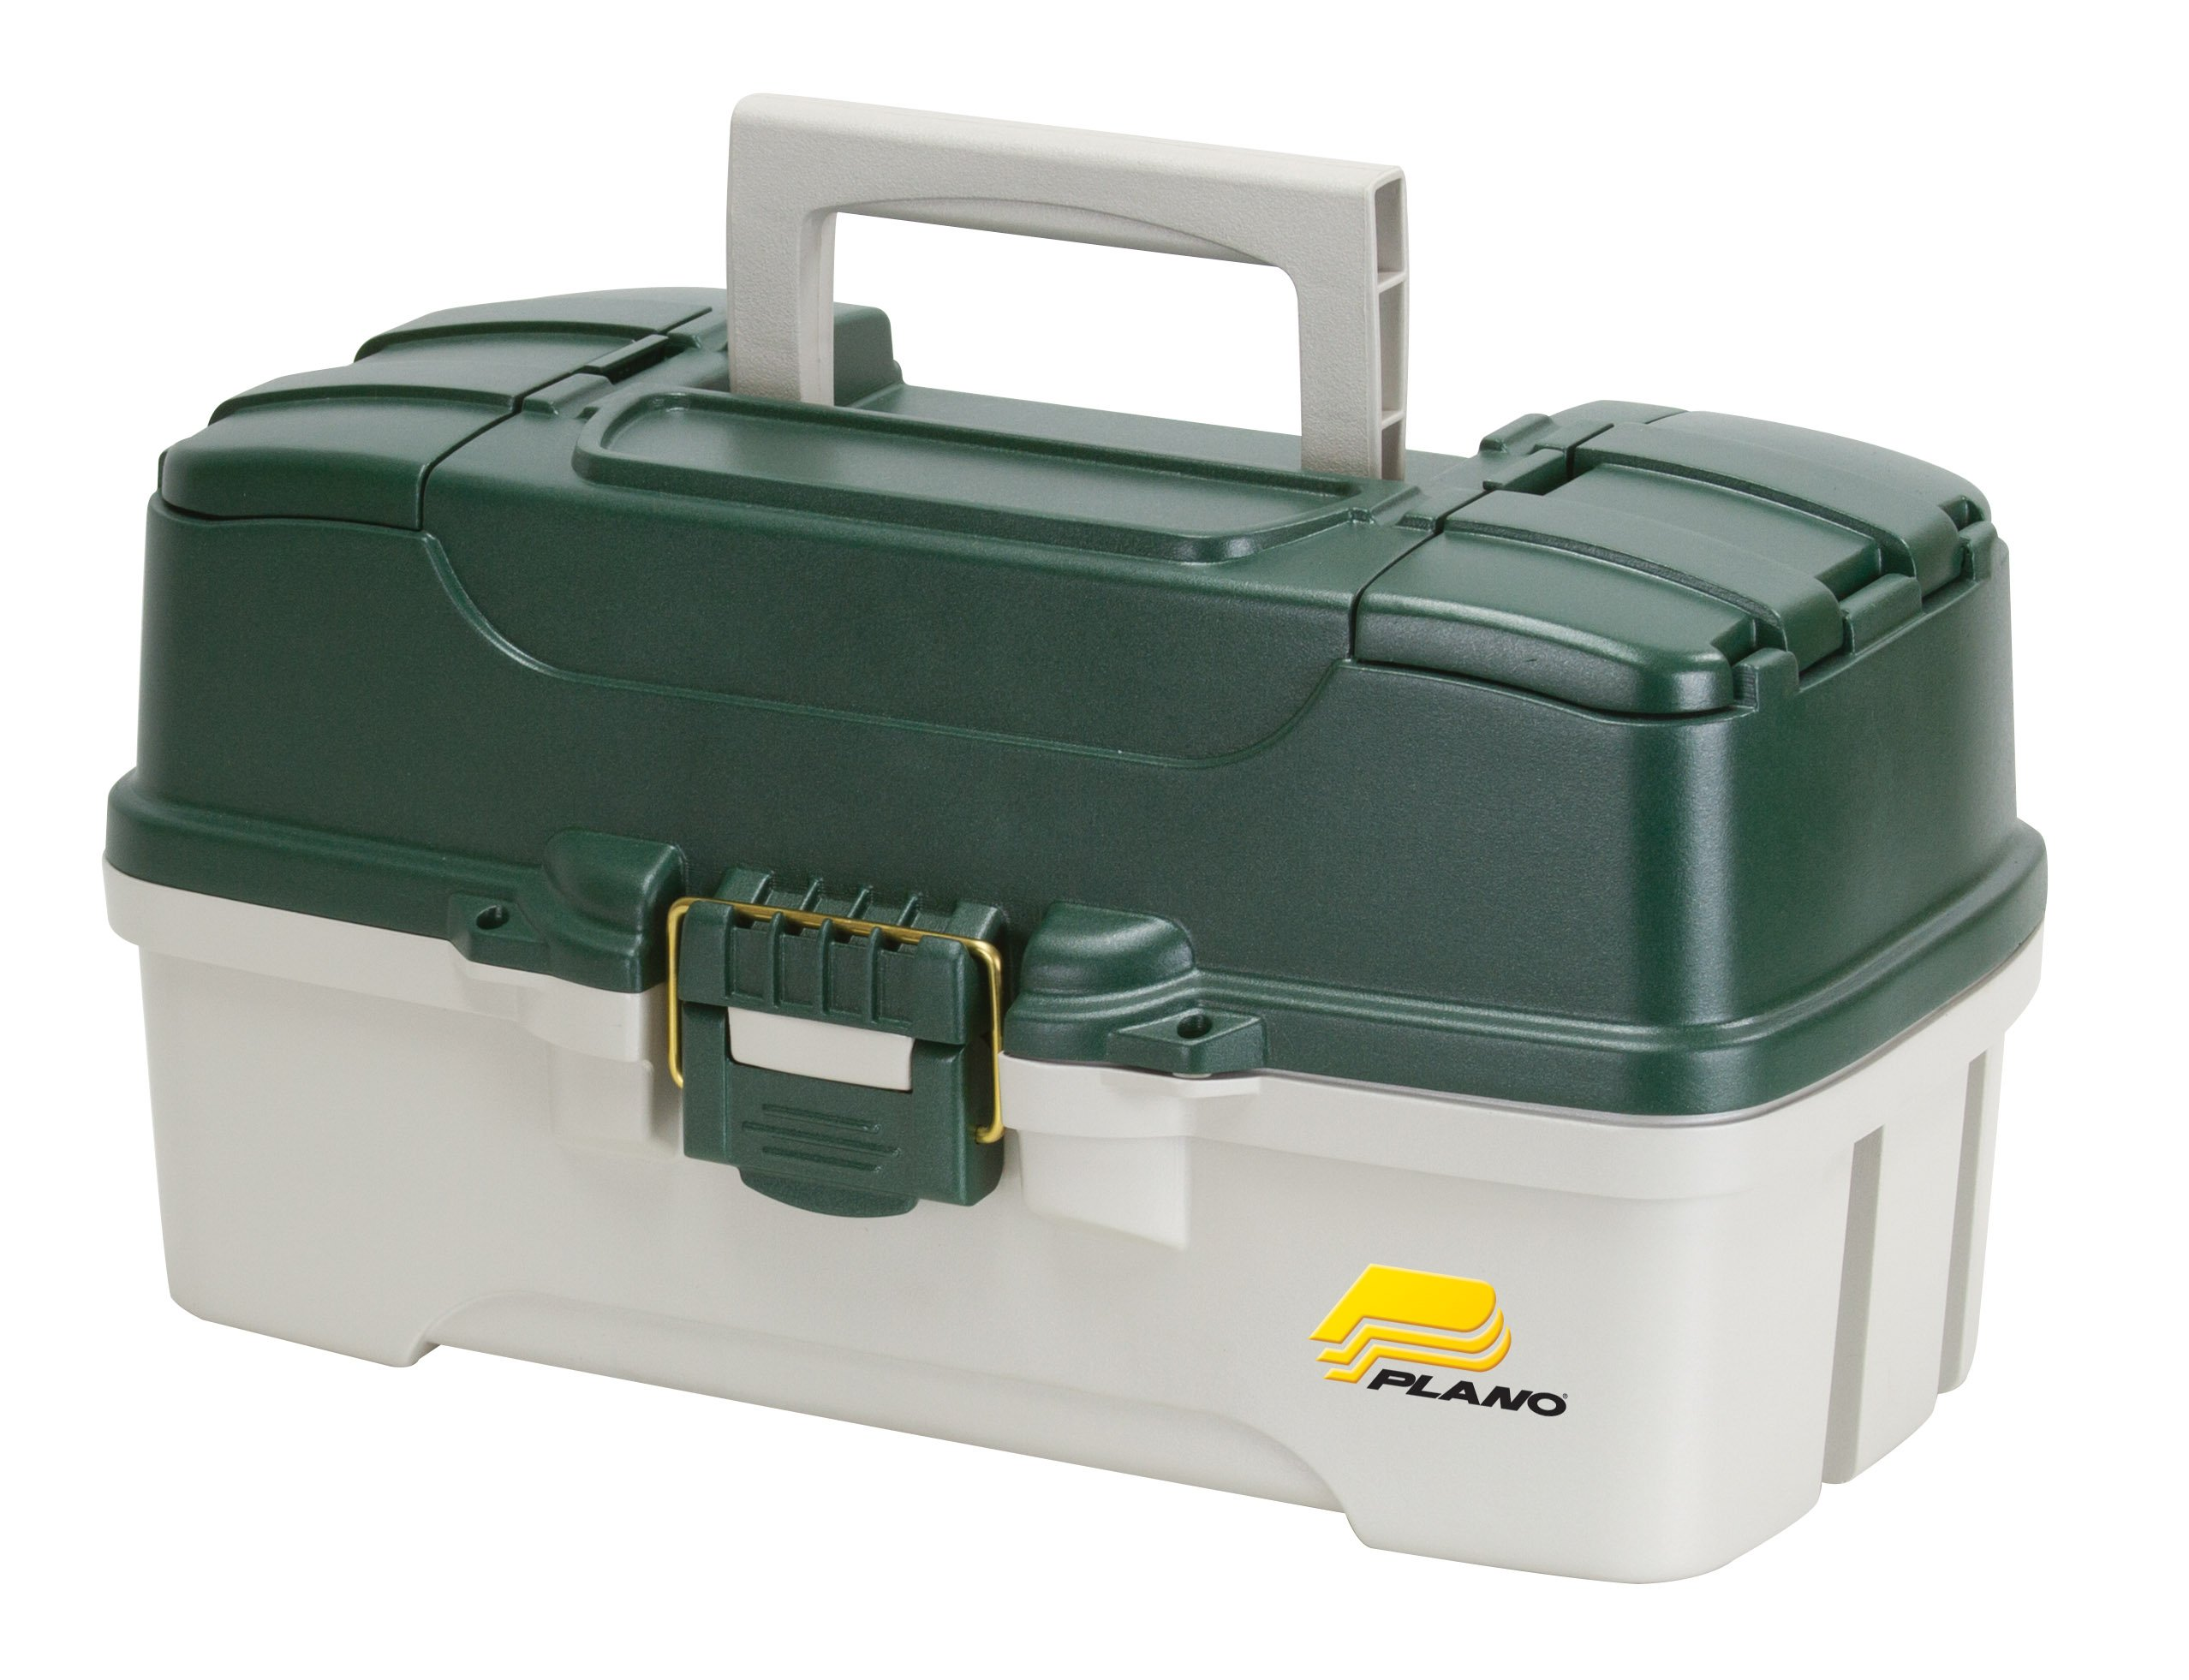 Plano 3-Tray Tackle Box with Dual Top Access, Dark Green Metallic/Off White, Premium Tackle Storage by Plano